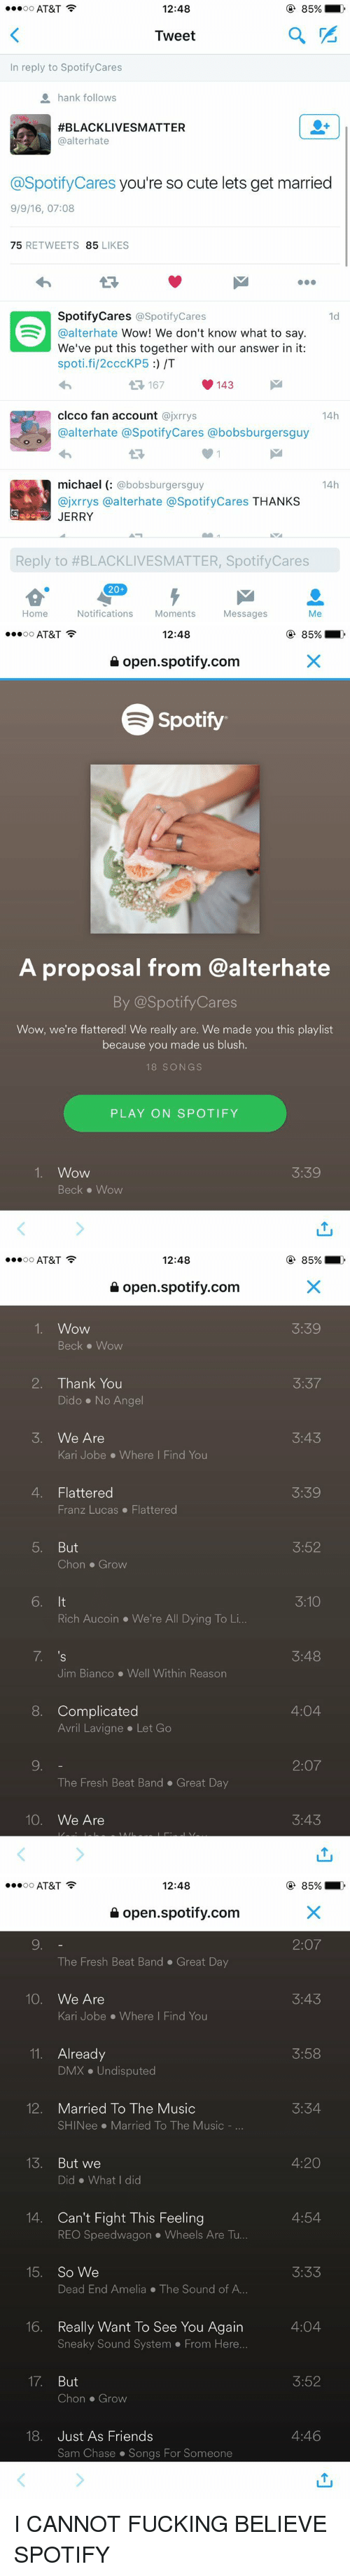 4:20: 12:48  AT&T  OO  a  Tweet  n reply to Spotify Cares  hank follows  AFBLACKLIVESMATTER  @alter hate  @Spotify Cares you're so cute lets get married  9/9/16, 07:08  75  RETWEETS 85  LIKES  Spotify Cares @Spotify Cares  1d  @alterhate  Wow! We don't know what to say  We've put this together with our answer in it:  spoti.fi/2cccKP5 /T  167  143  clcco fan account  @jxrrys  14h  @alter hate @Spotify Cares abobsburgersguy  michael  bobsburgersguy  14h  ajxrrys a alterhate @SpotifyCares  THANKS  JERRY  Reply to #BLACKLIVESMATTER, SpotifyCares  20  Home  Notifications  Moments  Messages  Me   12:48  AT&T  OO  open spotify.com  Spotify  A proposal from @alterhate  By @Spotify Cares  Wow, we're flattered! We really are. We made you this playlist  because you made us blush.  18 SONGS  PLAY ON SPOTIFY  1. Wow  3:39  Beck Wow   12:48  AT&T  OO  open spotify.com  1. Wow  Beck Wow  2. Thank You  Dido No Angel  5. We Are  Kari Jobe Where I Find You  4. Flattered  Franz Lucas Flattered  5. But  Chon Grow  6. It  Rich Aucoin V We're All Dying To Li.  7, 's  Jim Bianco Well within Reason  8. Complicated  Avril Lavigne Let Go  The Fresh Beat Band Great Day  10  We Are  85%  3:39  3:37  3:43  3:39  3:52  3:10  3:48  4:04  2:07  3:43   12:48  AT&T  OO  open spotify.com  The Fresh Beat Band Great Day  10  We Are  Kari Jobe Where I Find You  11. Already  DMX Undisputed  12  Married To The Music  SHINee Married To The Music  13  But we  Did What did  14. Can't Fight This Feeling  REO Speedwagon Wheels Are Tu...  15  So We  Dead End Amelia The Sound of A...  16. Really want To See You Again  Sneaky Sound System From Here...  17  But  Chon Grow  18. Just As Friends  Sam Chase Songs For Someone  2:07  3:43  3:58  3:34  4:20  4:54  3:33  4:04  3:52  4:46 I CANNOT FUCKING BELIEVE SPOTIFY